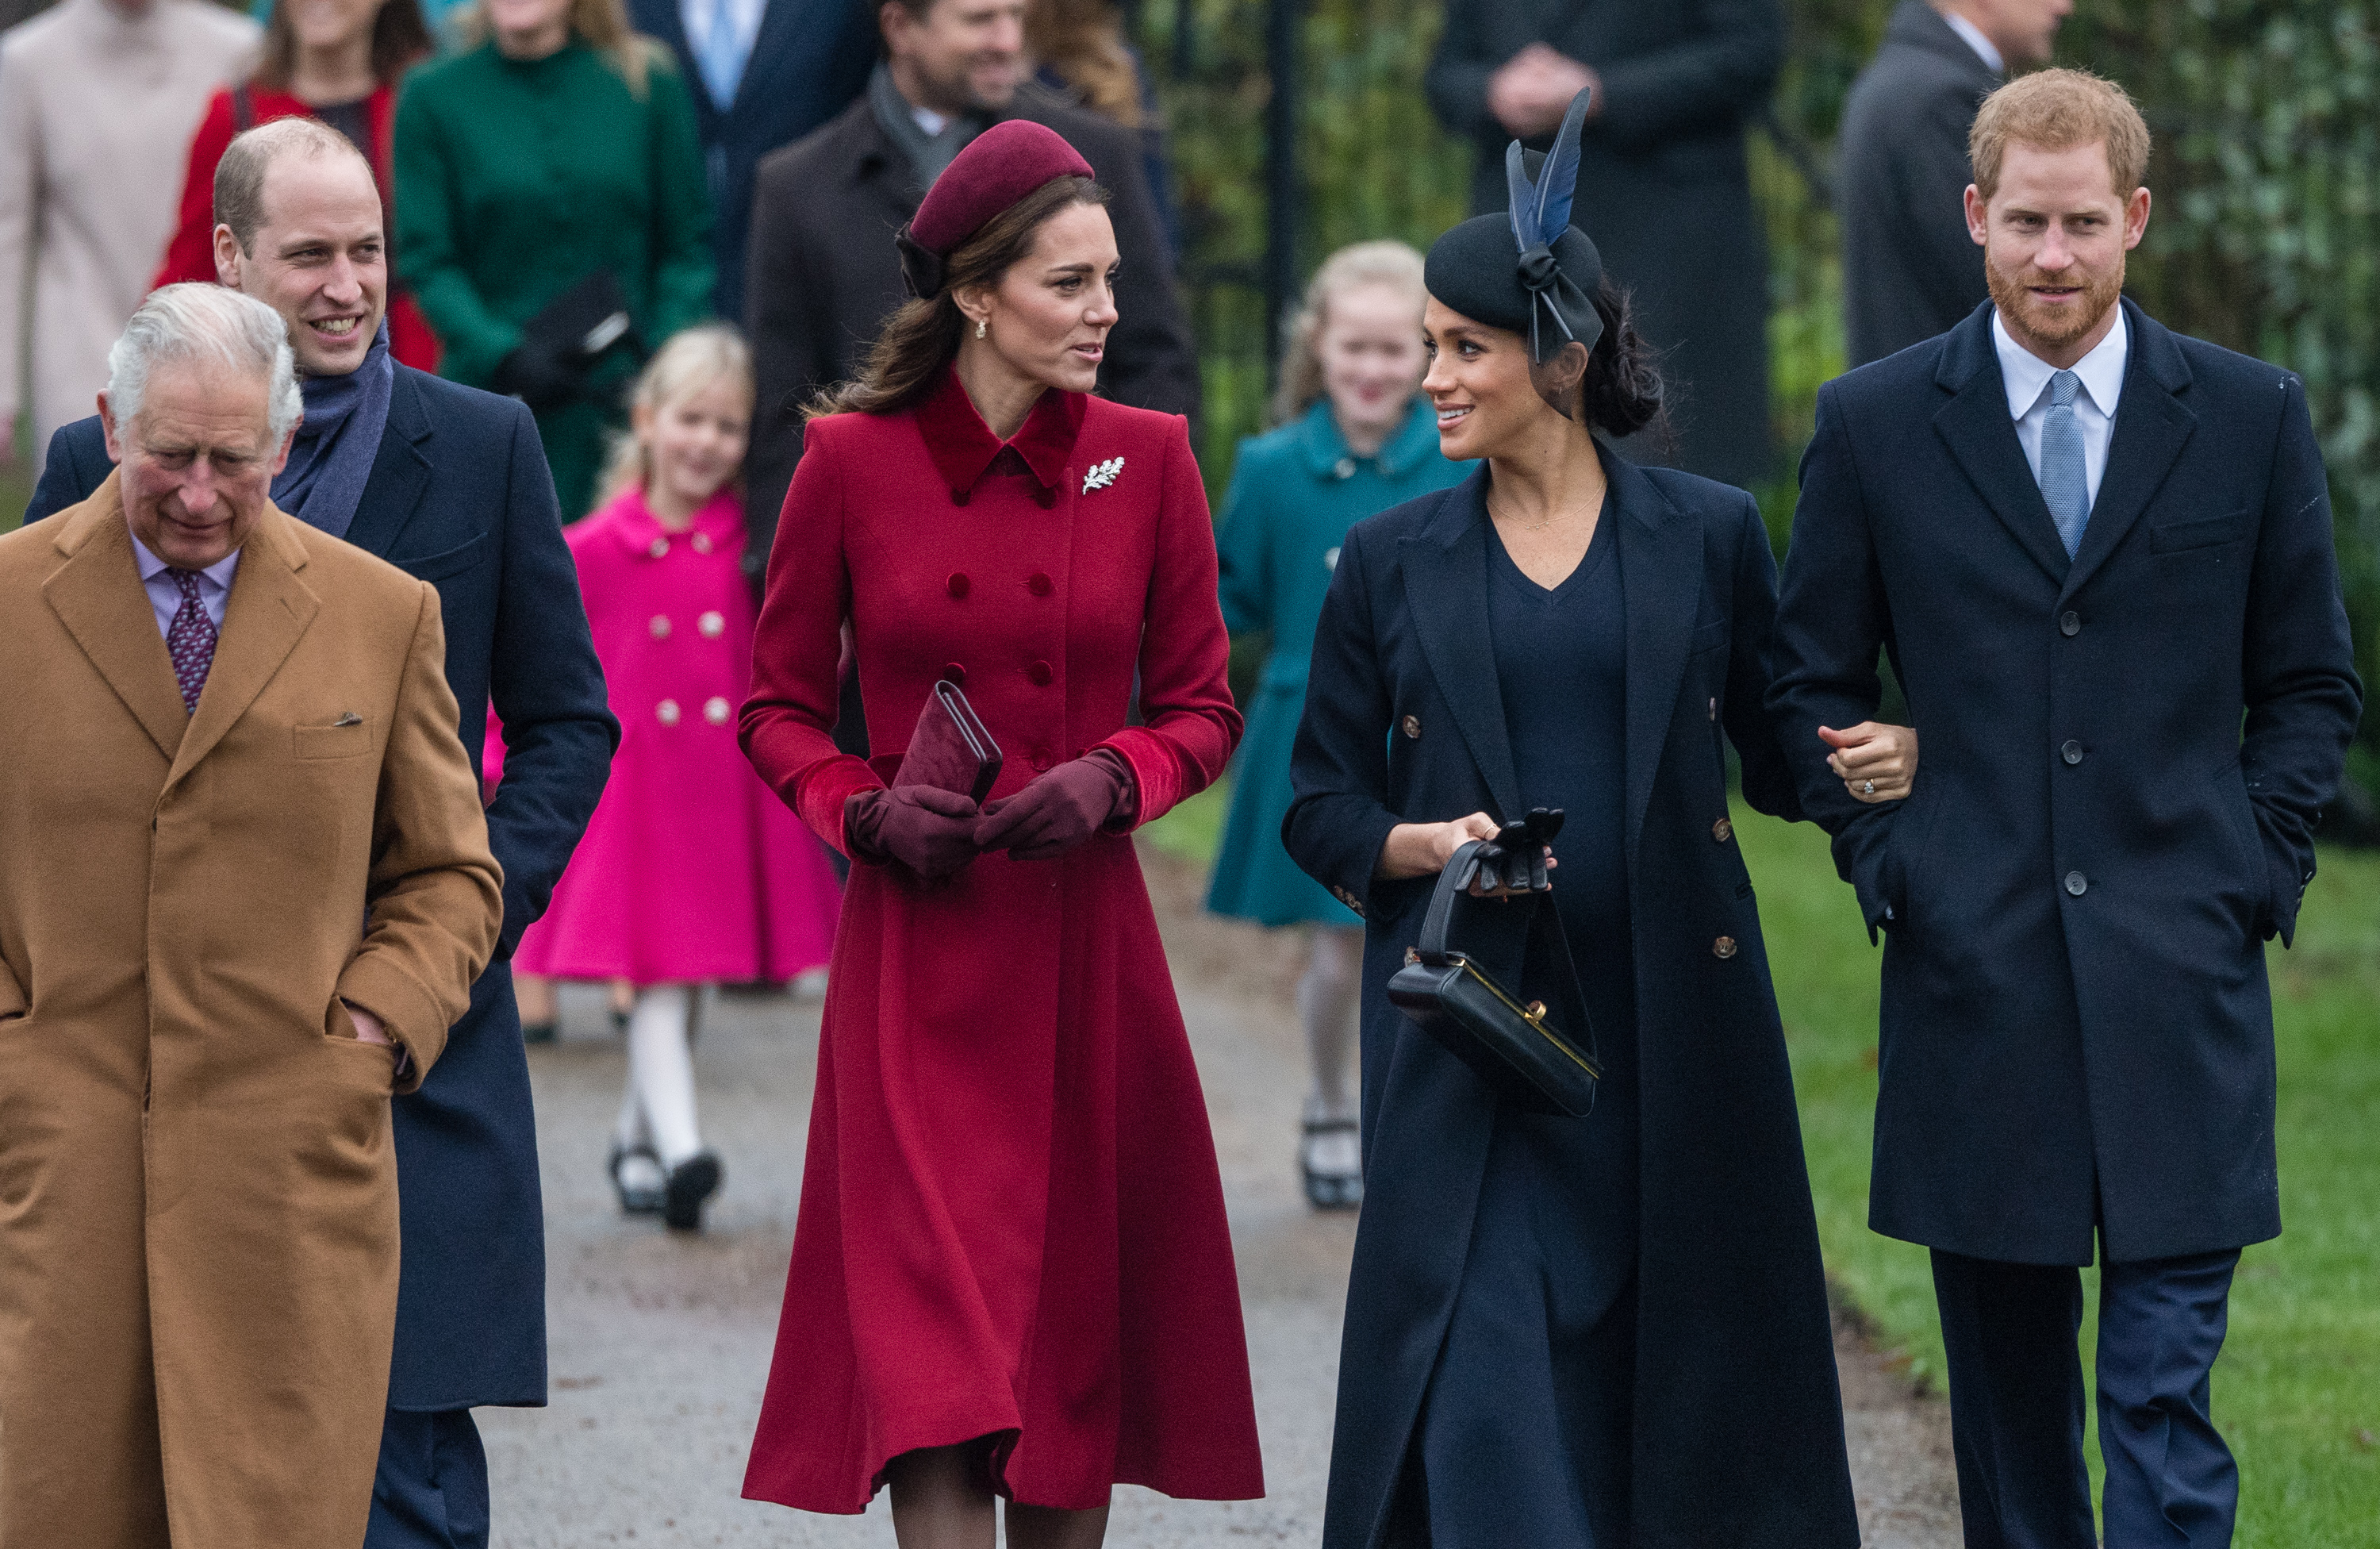 DECEMBER 25: Prince Charles, Prince of Wales, Prince William, Duke of Cambridge, Catherine, Duchess of Cambridge, Meghan, Duchess of Sussex and Prince Harry, Duke of Sussex attend Christmas Day Church service at Church of St Mary Magdalene on the Sandringham estate on December 25, 2018 in King's Lynn, England.